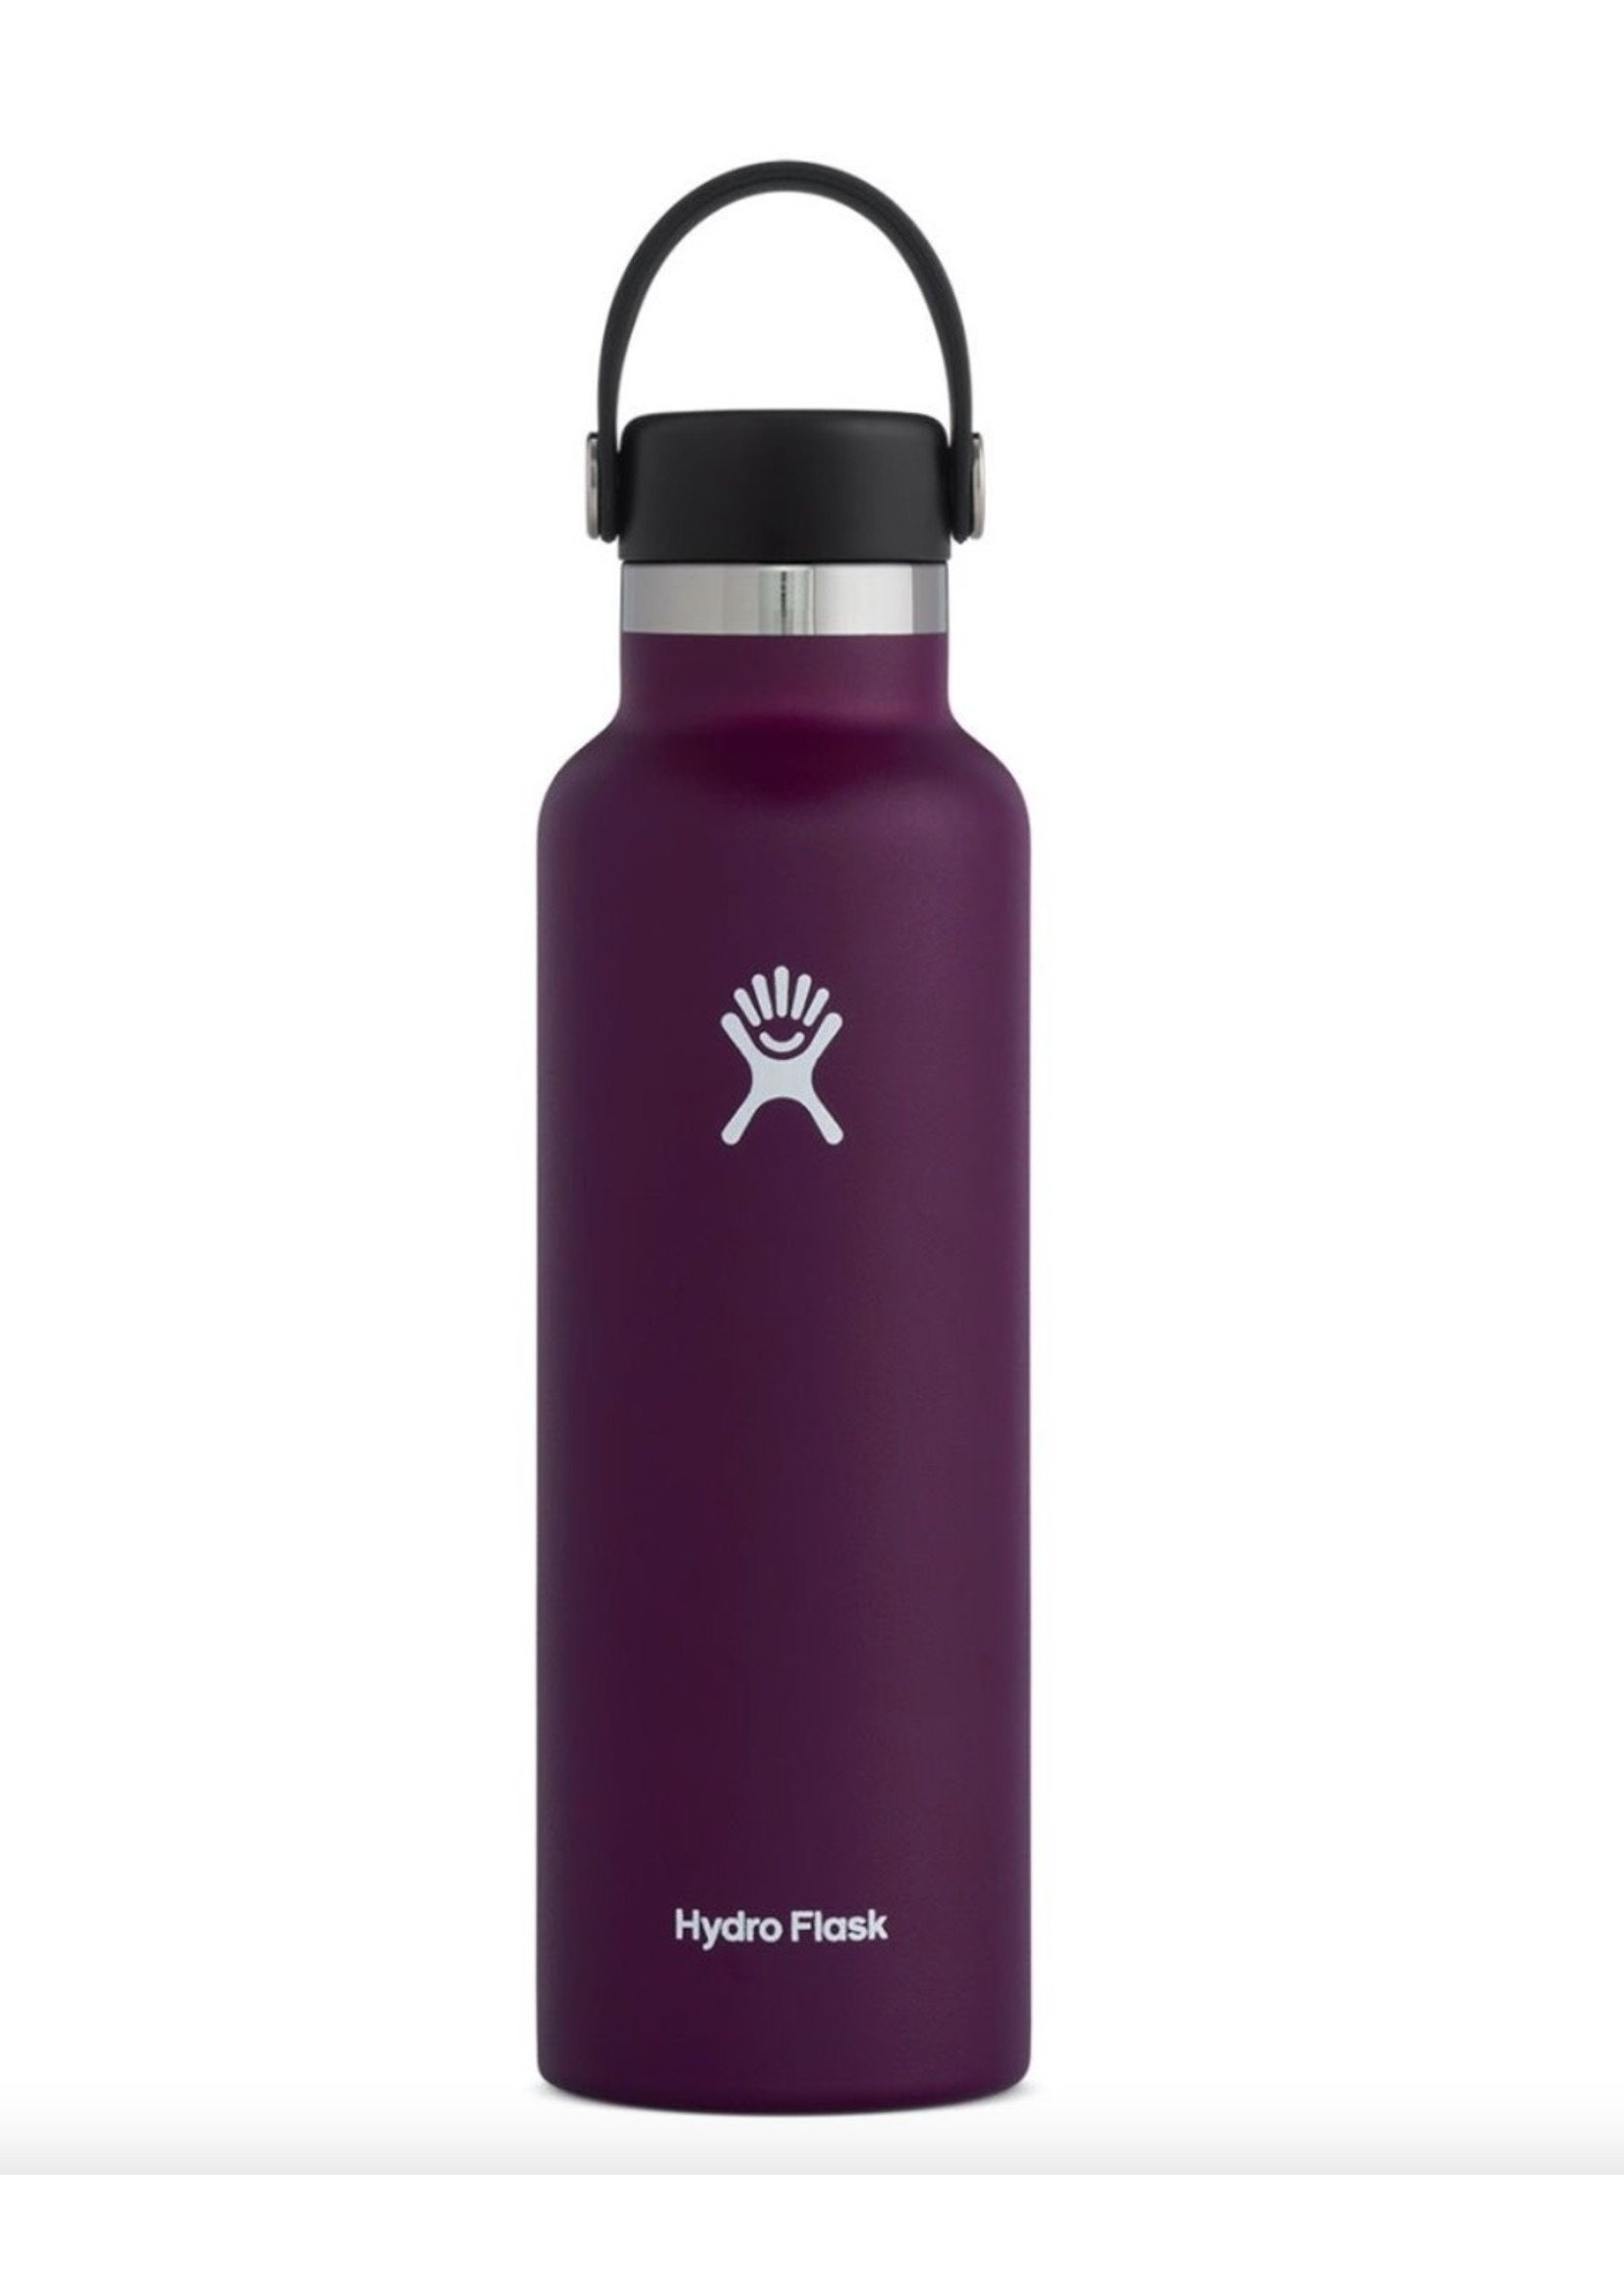 Hydro Flask Hydro Flask, 21 oz Standard Mouth Flex Cap Insulated Stainless Steel Bottle in Eggplant